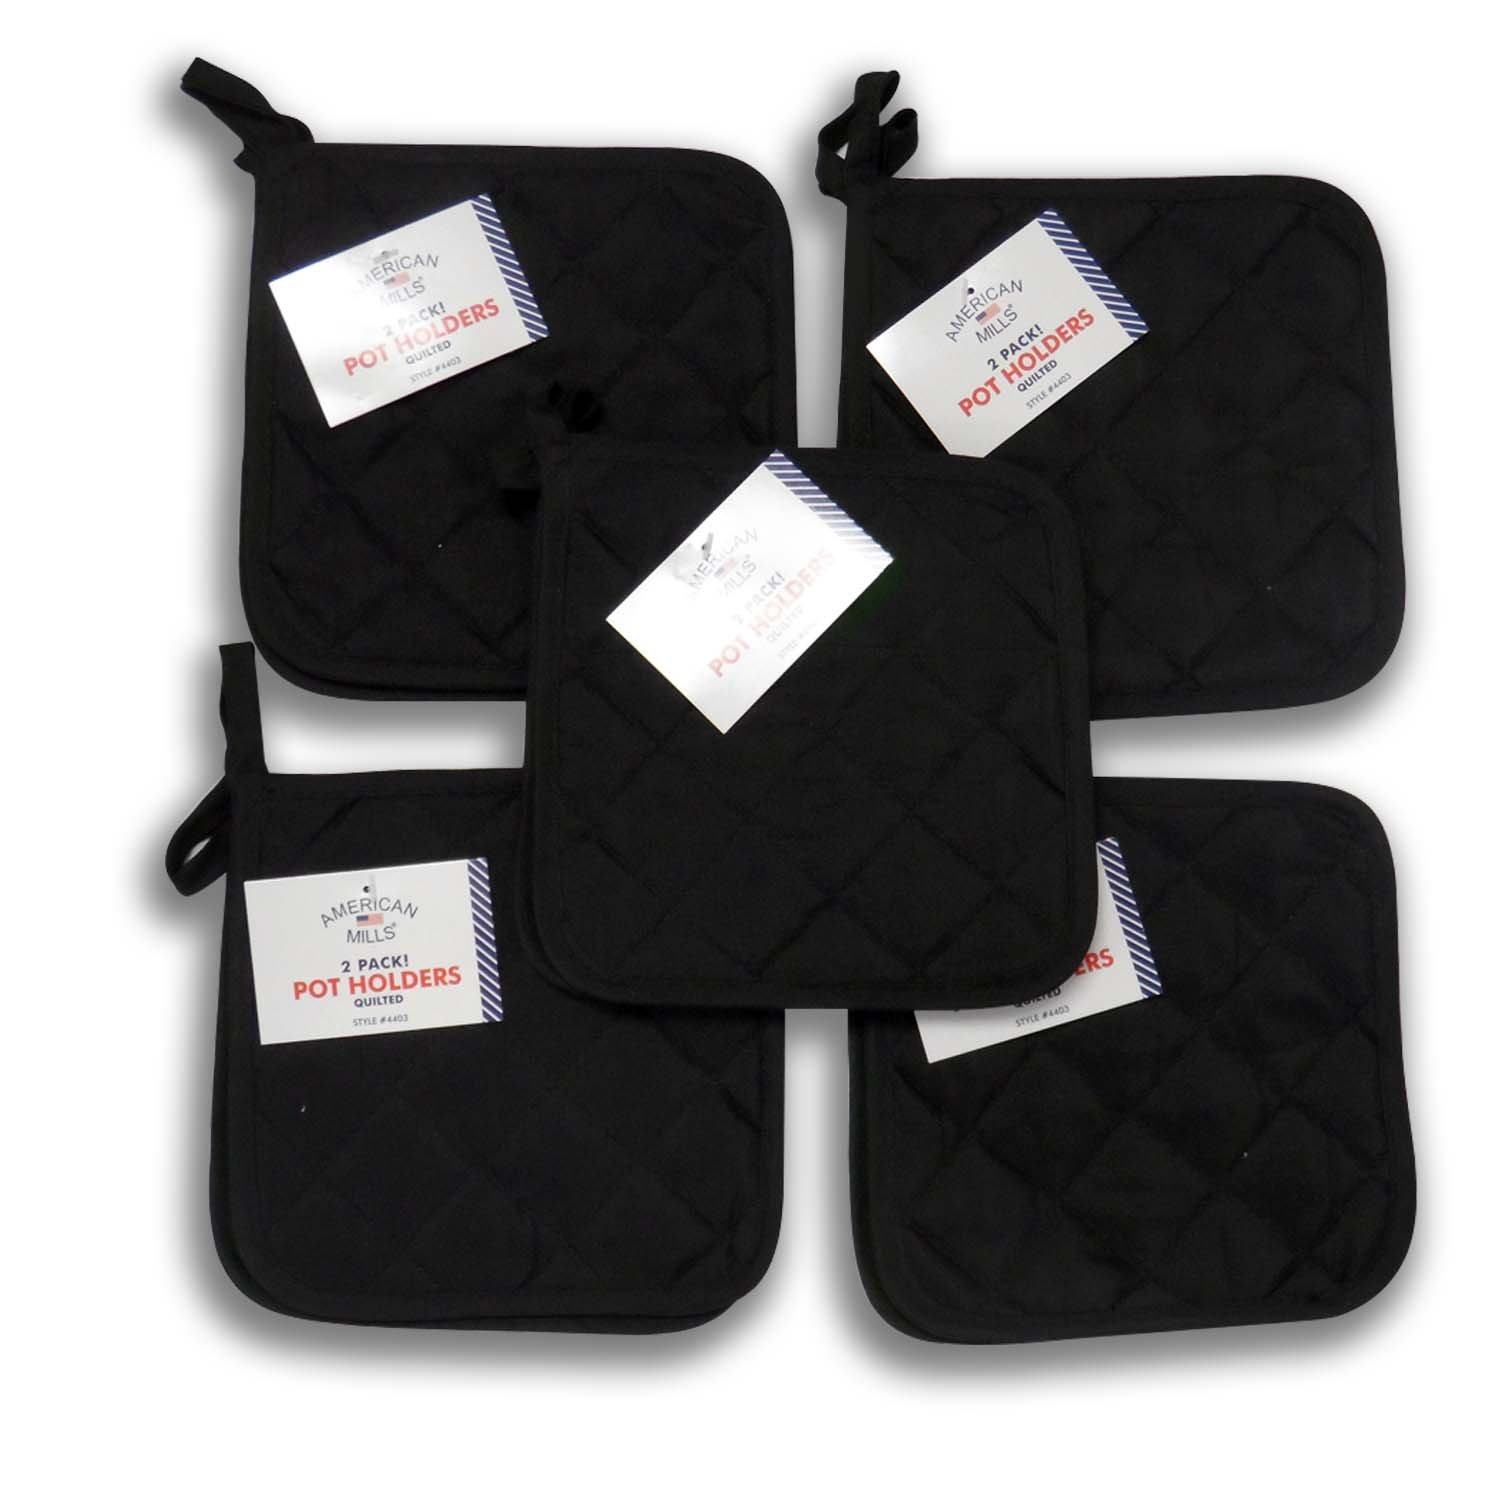 (Ten) 10 Pack Pot Holders 6.5 Square Solid Color Everday Quality Kitchen Cooking Chef Linens (Black)